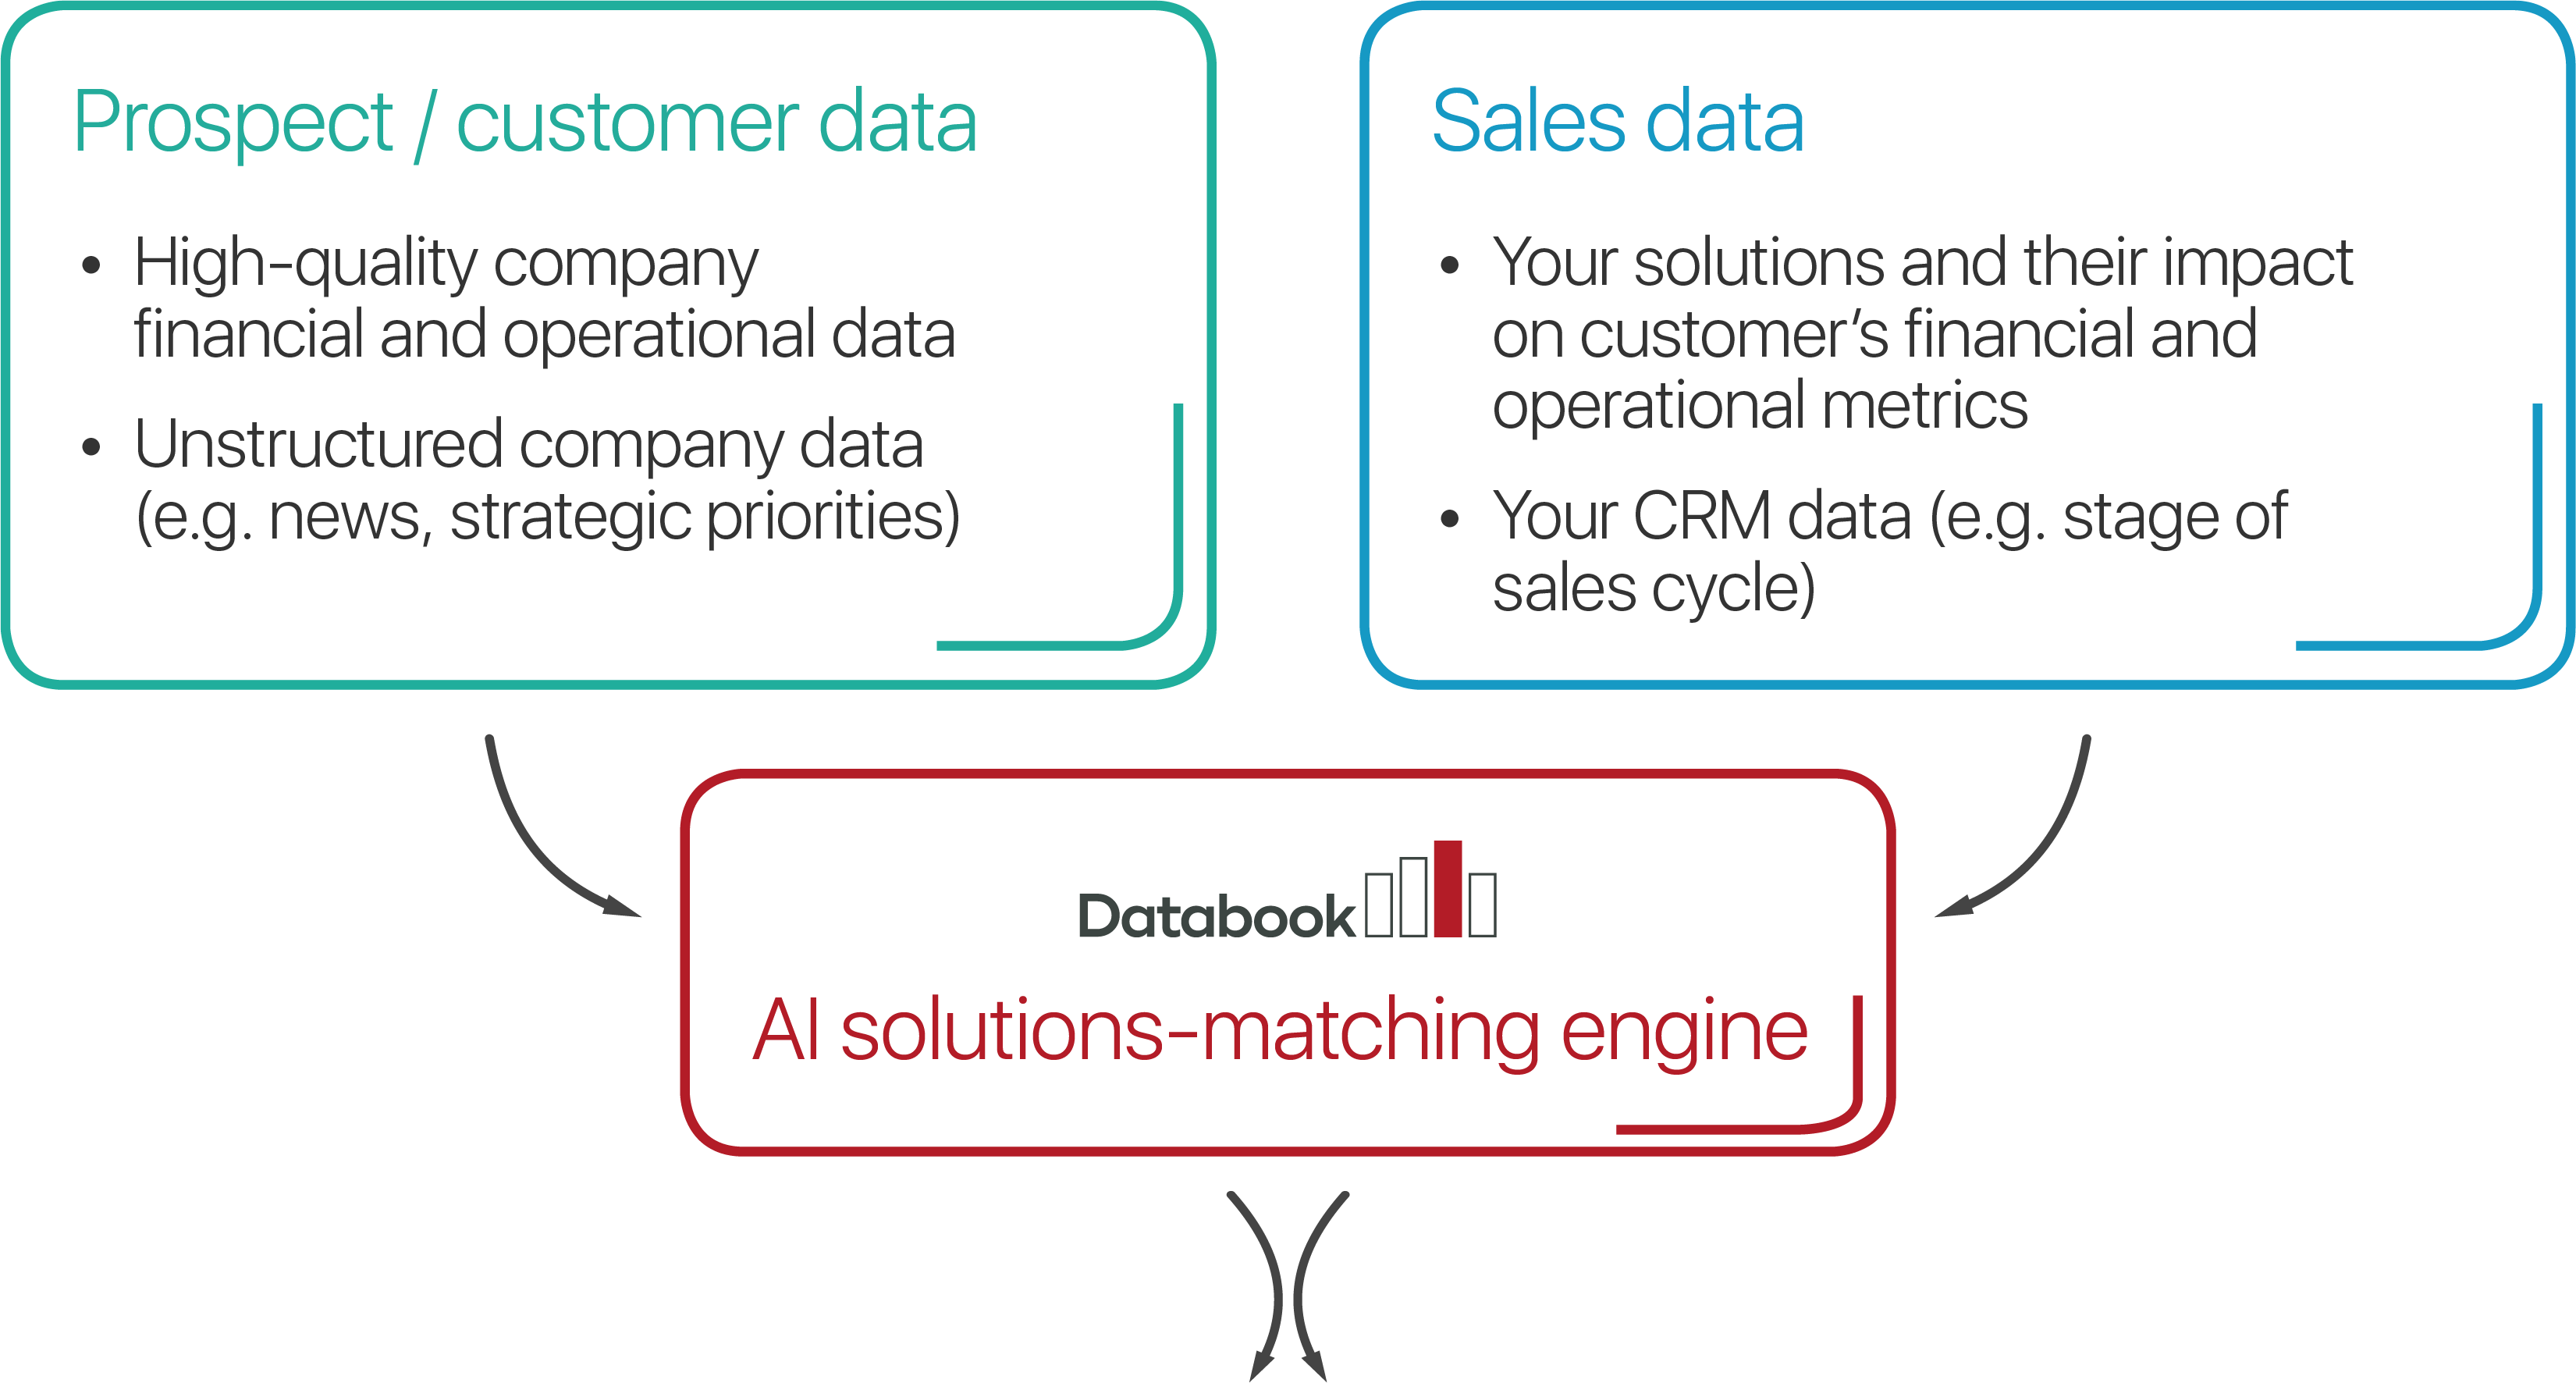 Prospect/customer data. High-quality company financial and operational data. Unstructured company data. Sales data. Your solutions and their impact on customer's financial and operational metrics. Your CRM data. AI solutions-matching engine.